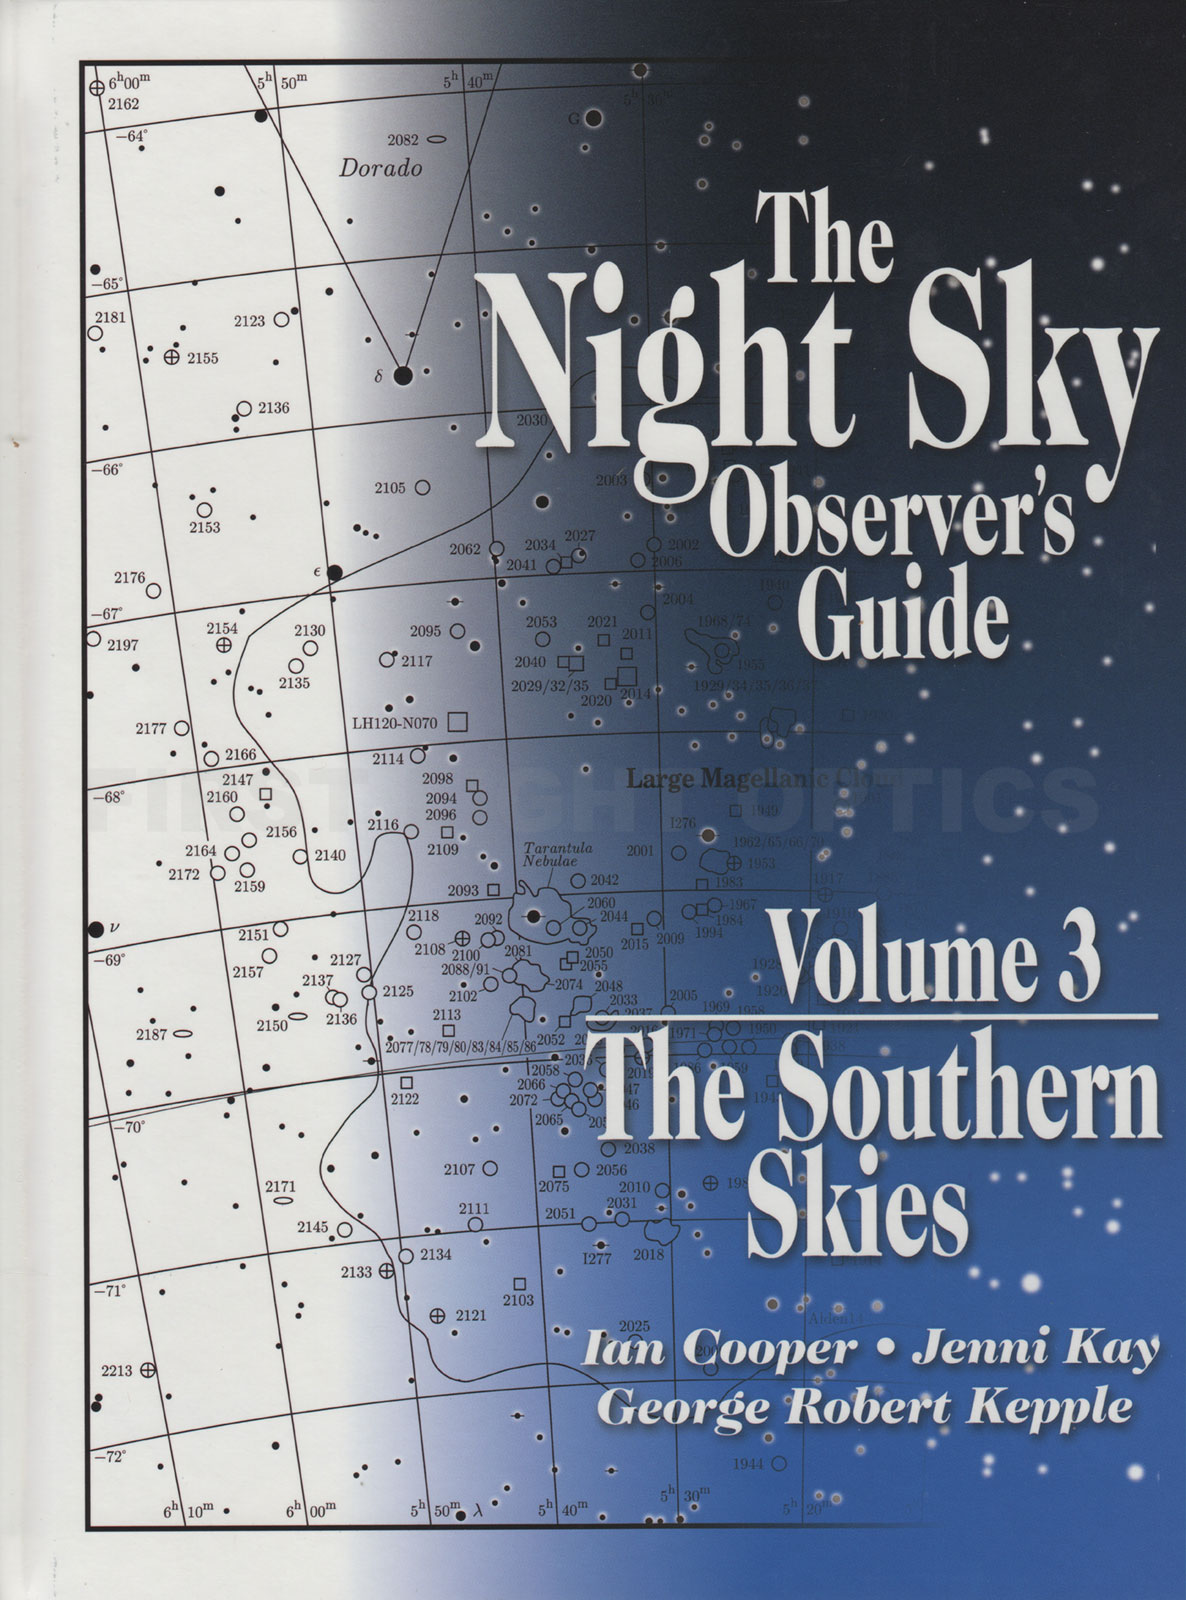 The Night Sky Observers Guide - Volumes 1, 2 and 3 Book